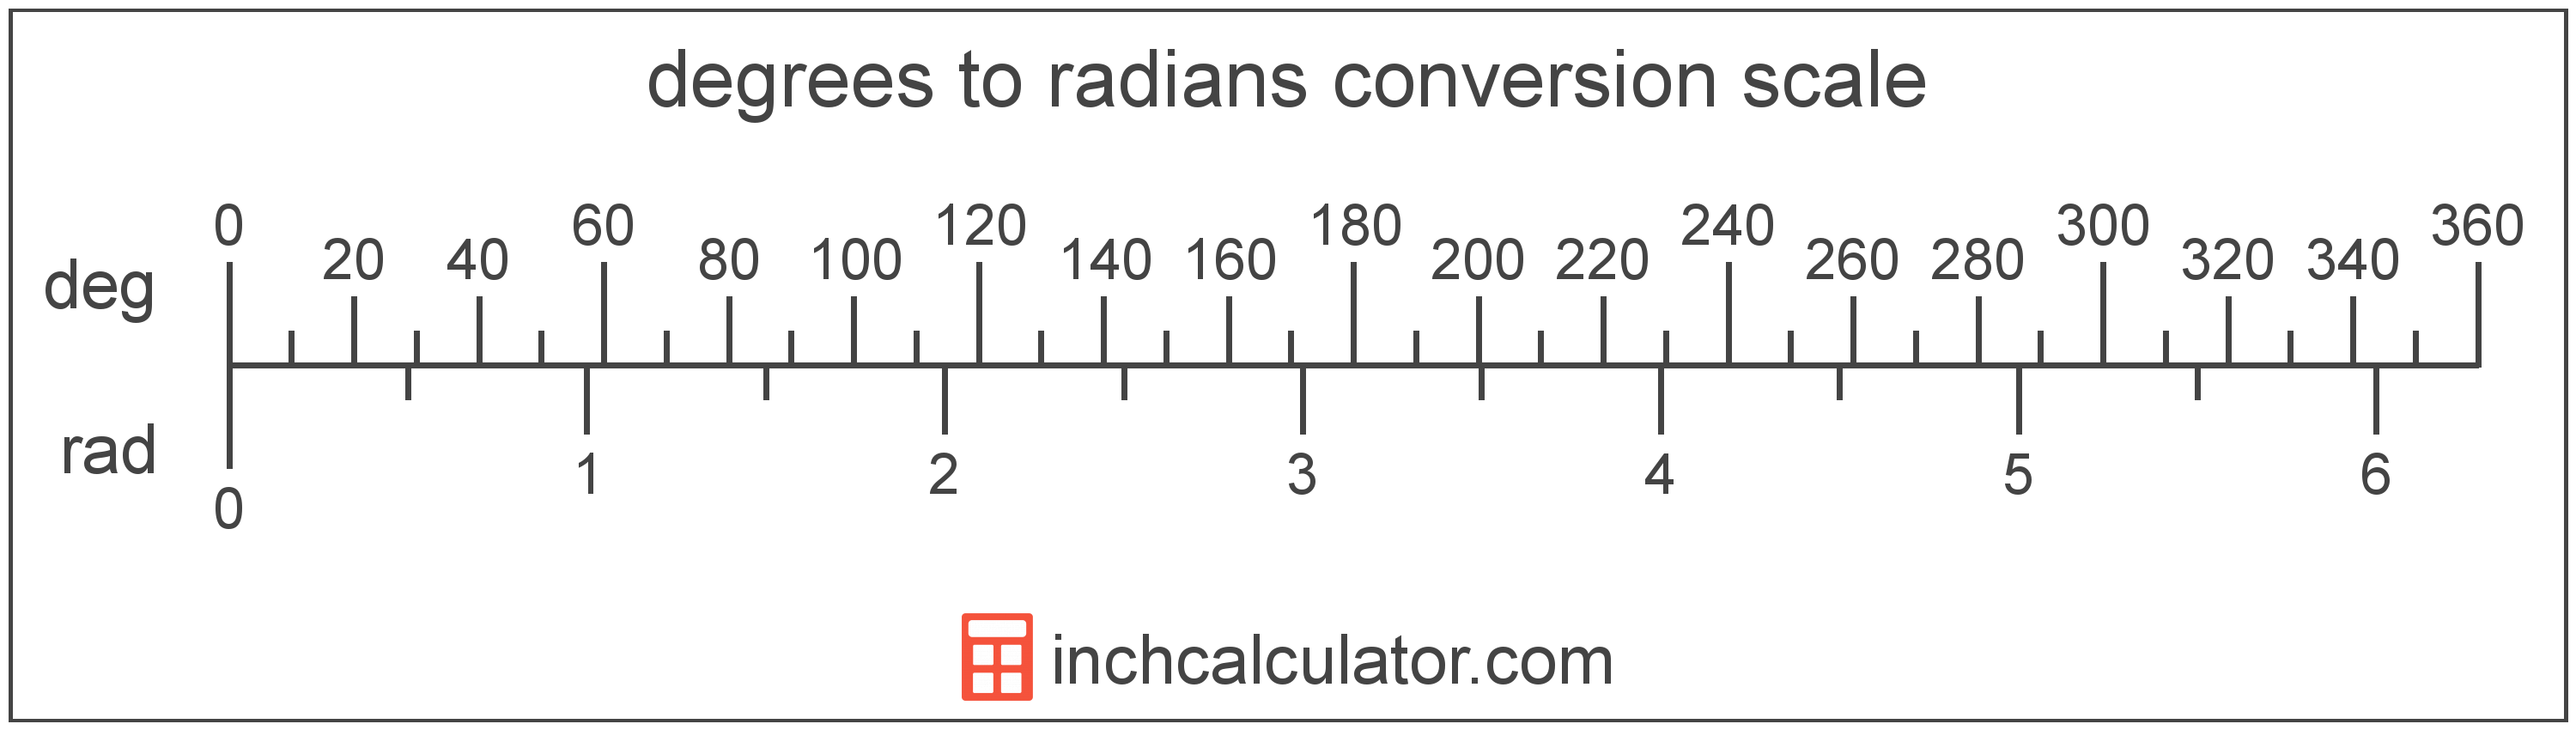 conversion scale showing radians and equivalent degrees angle values